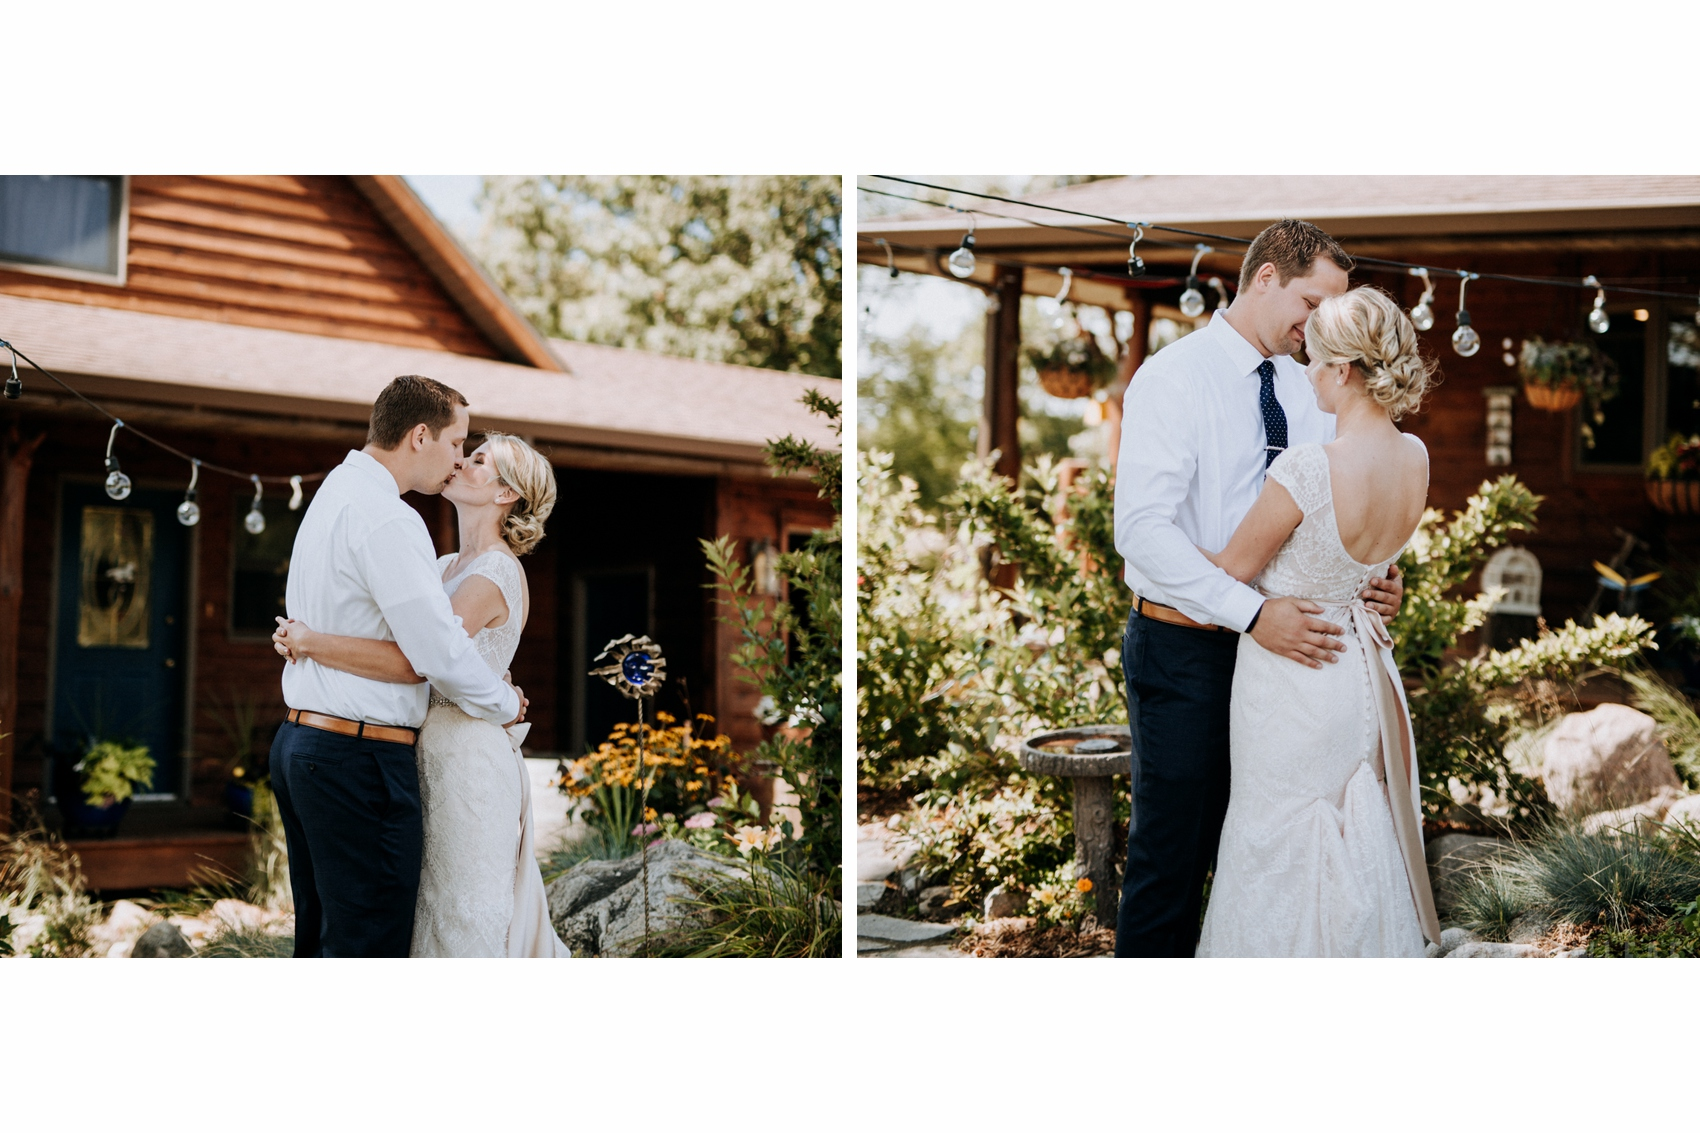 farm-wedding-first-look-in-south-haven-mn-007-008.jpg